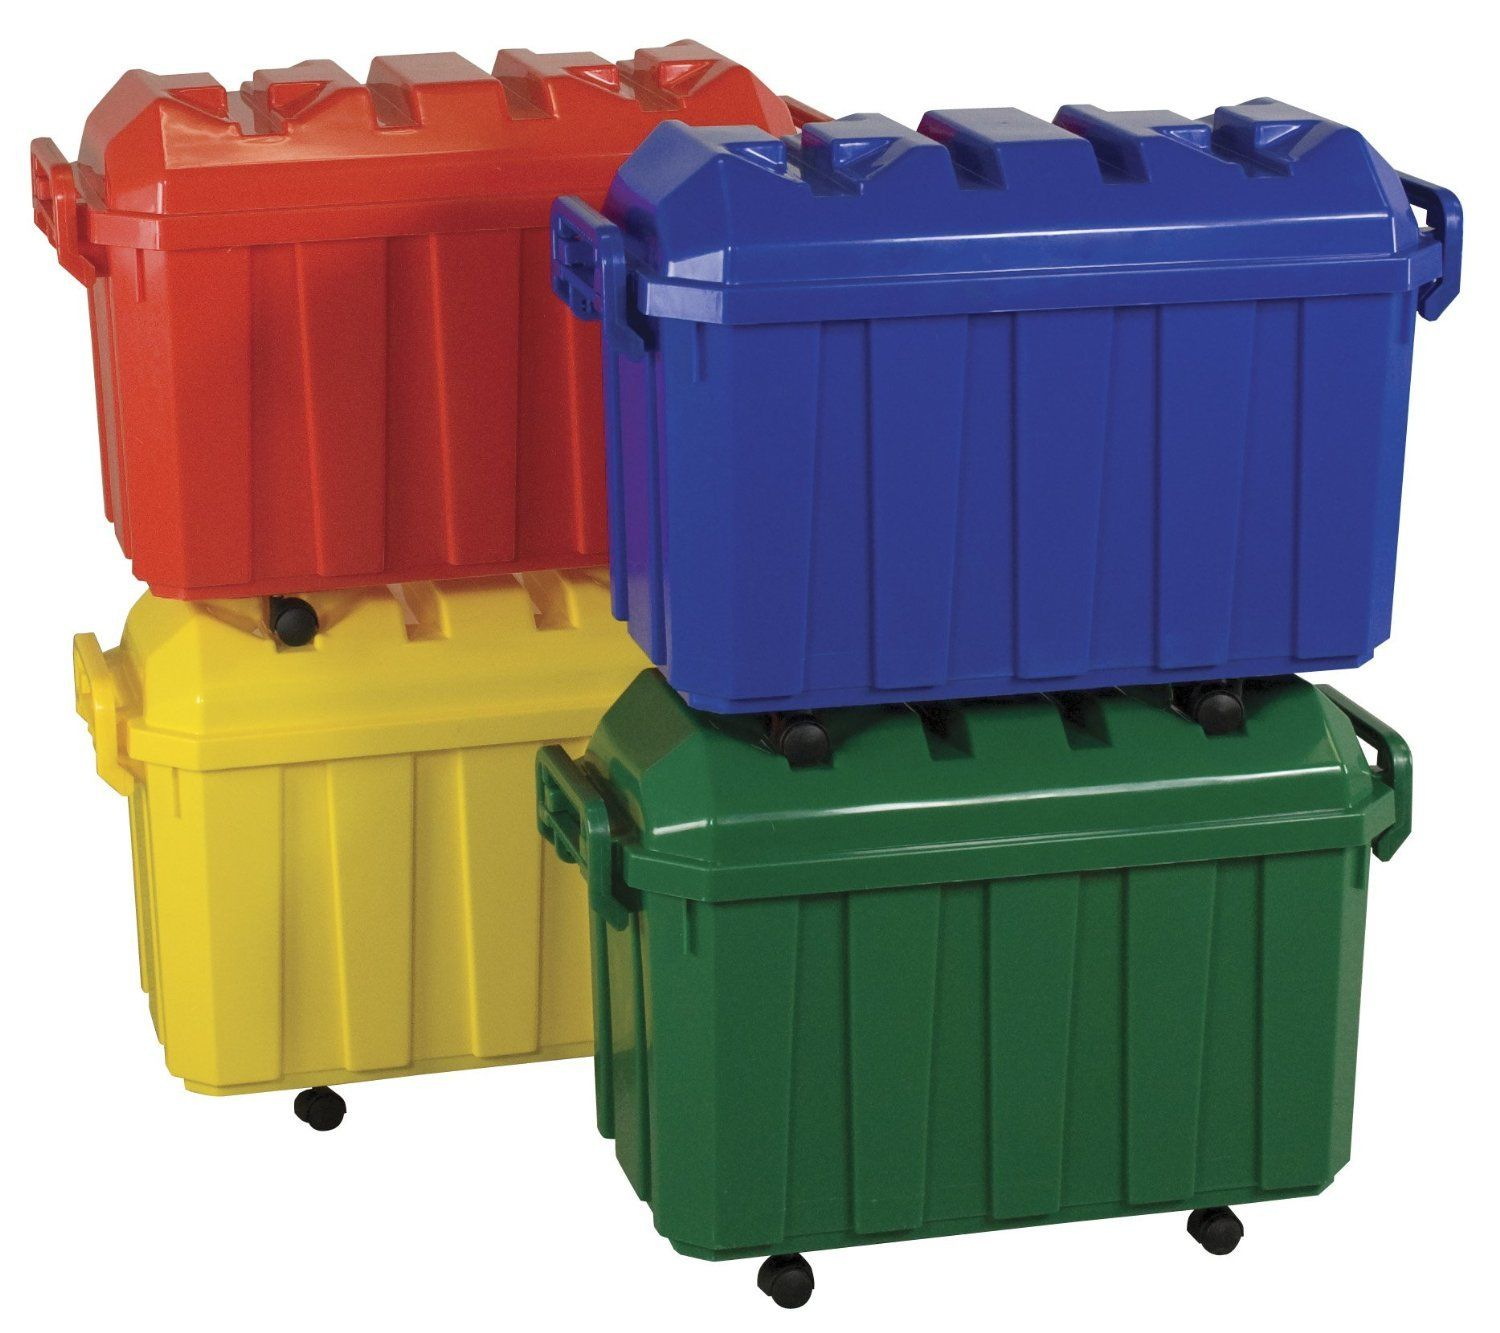 #75 - (4 PACK) of 18 Gallon Stackable Mobile Storage Trunks in Assorted Colors